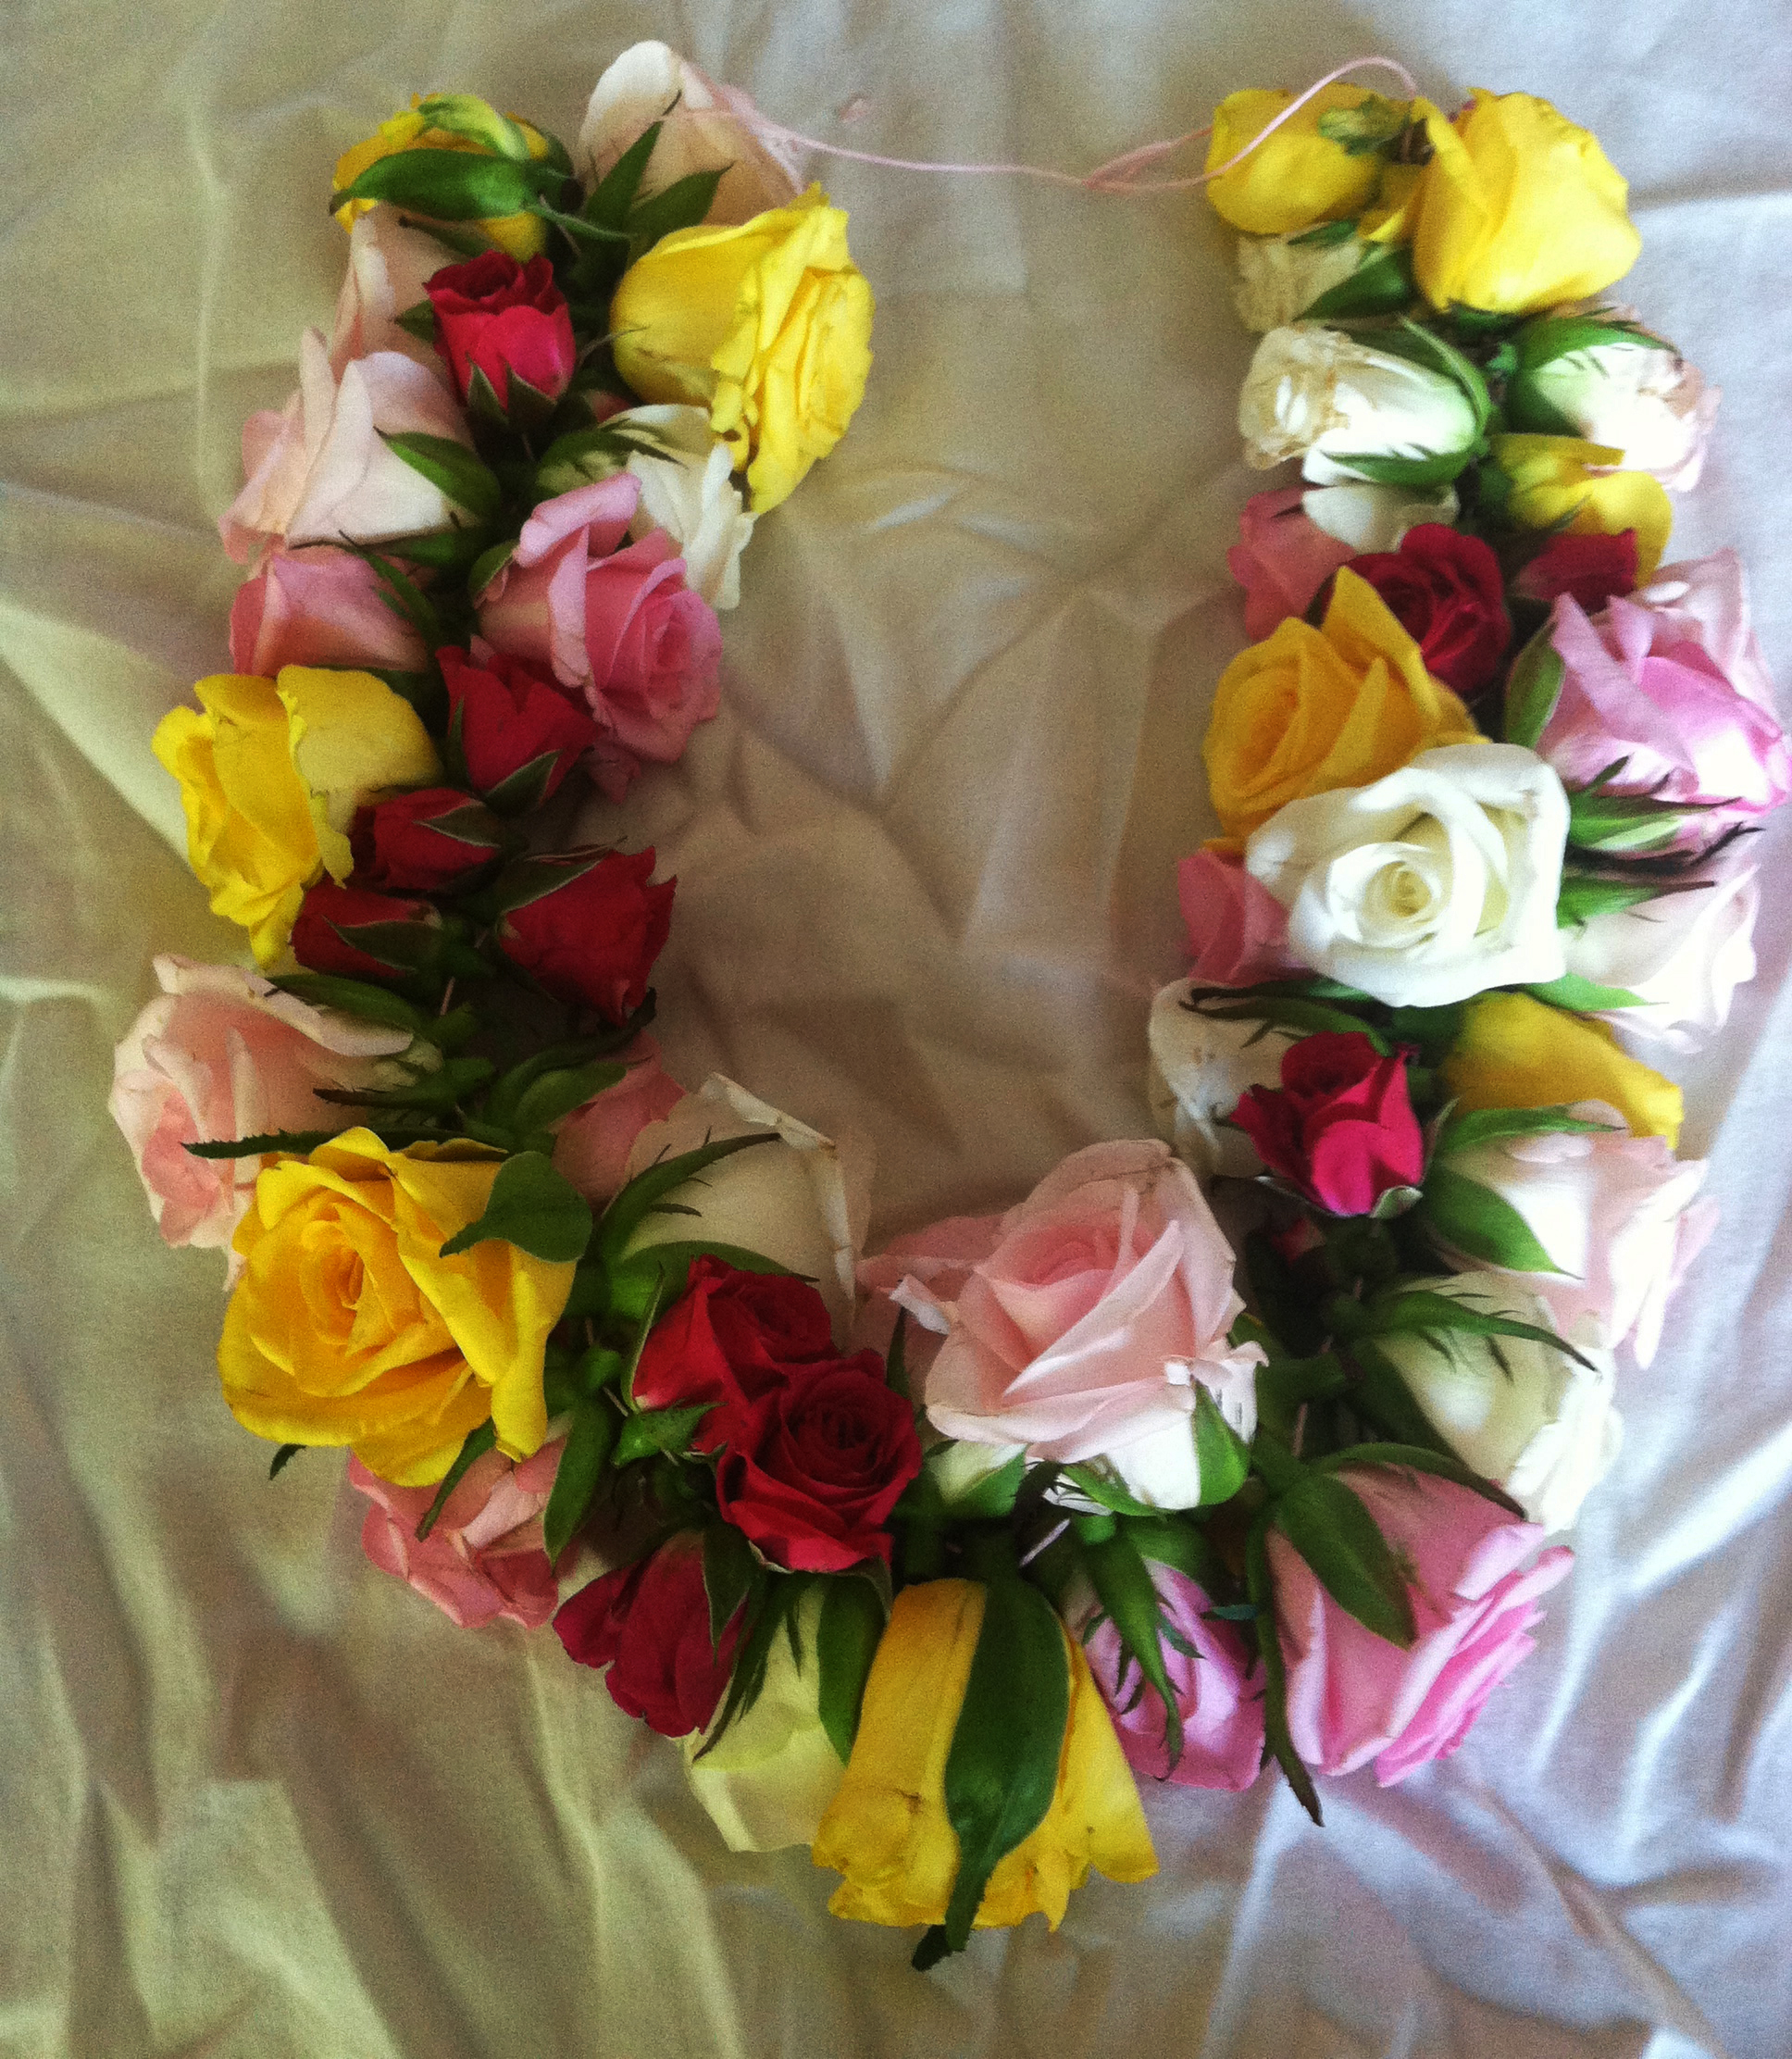 How to make a lei a fresh flower lei with roses go hippie chic rose lei garland izmirmasajfo